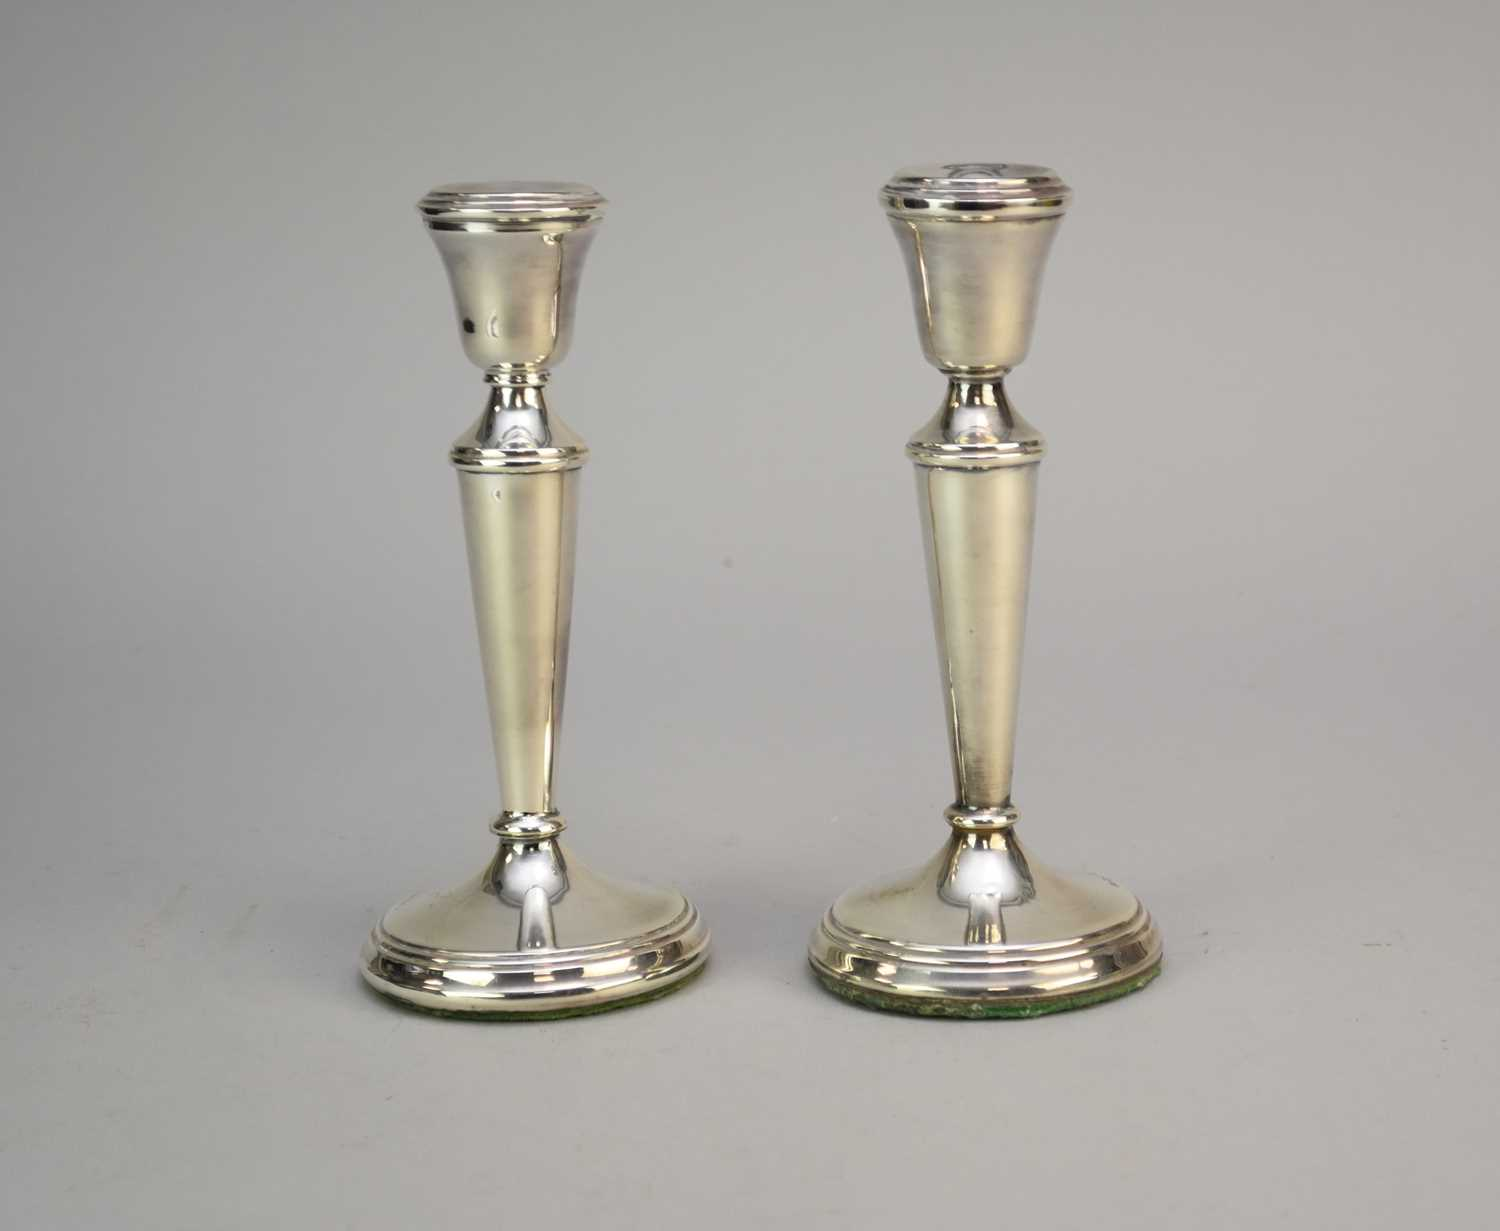 Lot 8 - A pair of Dutch silver mounted candlesticks